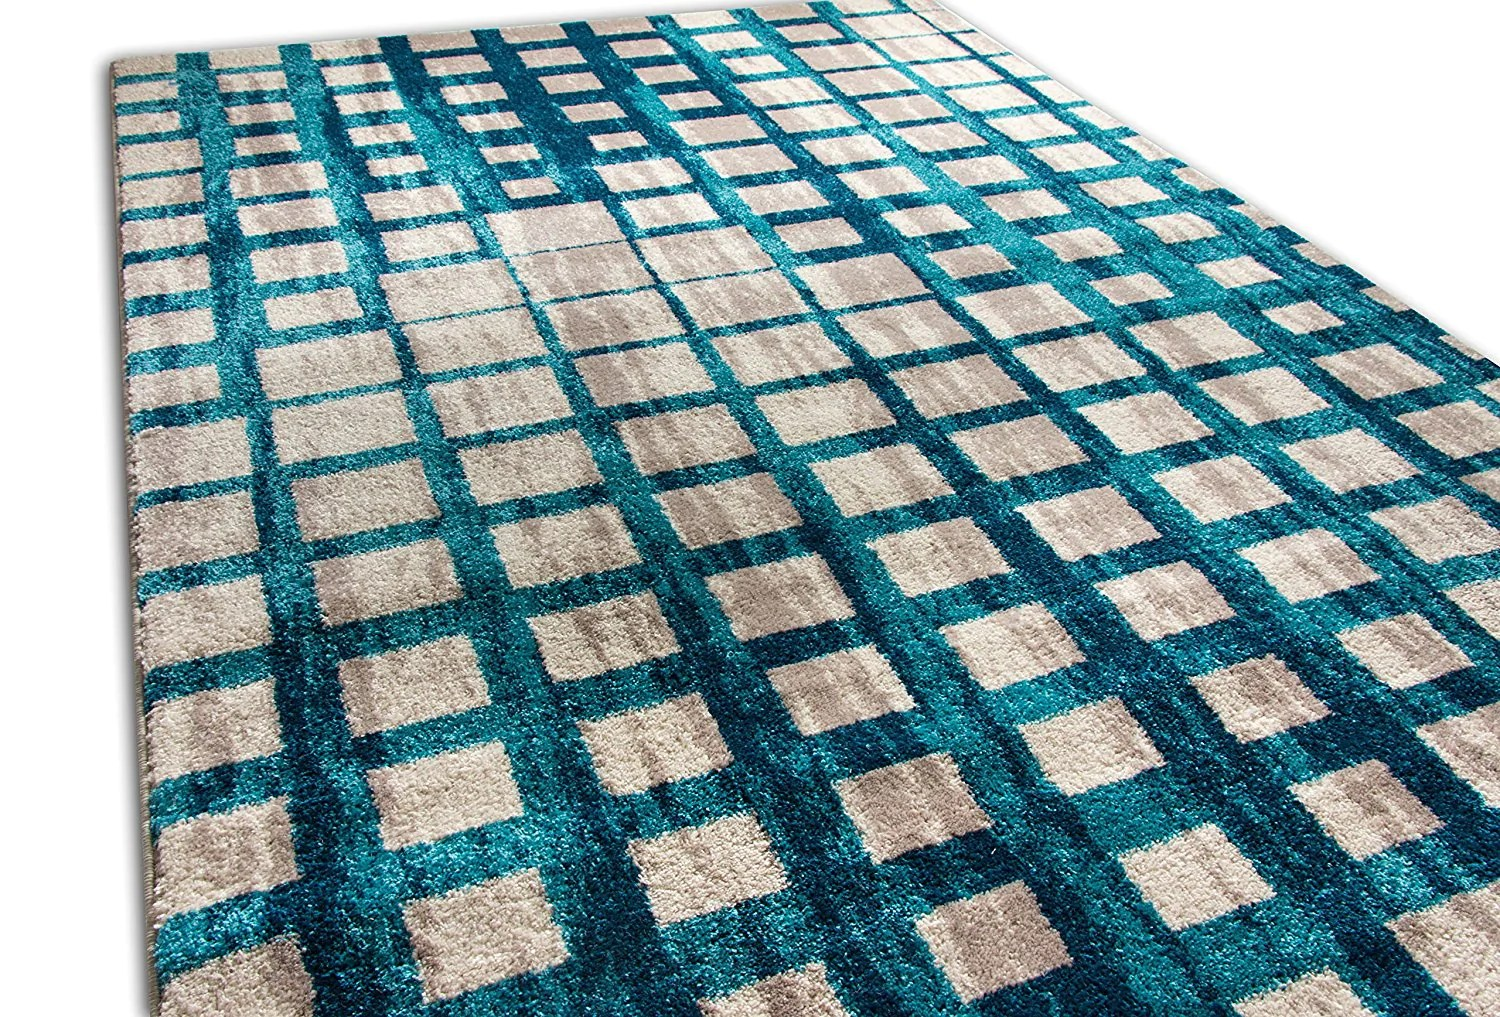 Teal Color Area Rugs Teal Blue Square Tiles Design Contemporary Area Rugs Thick Soft